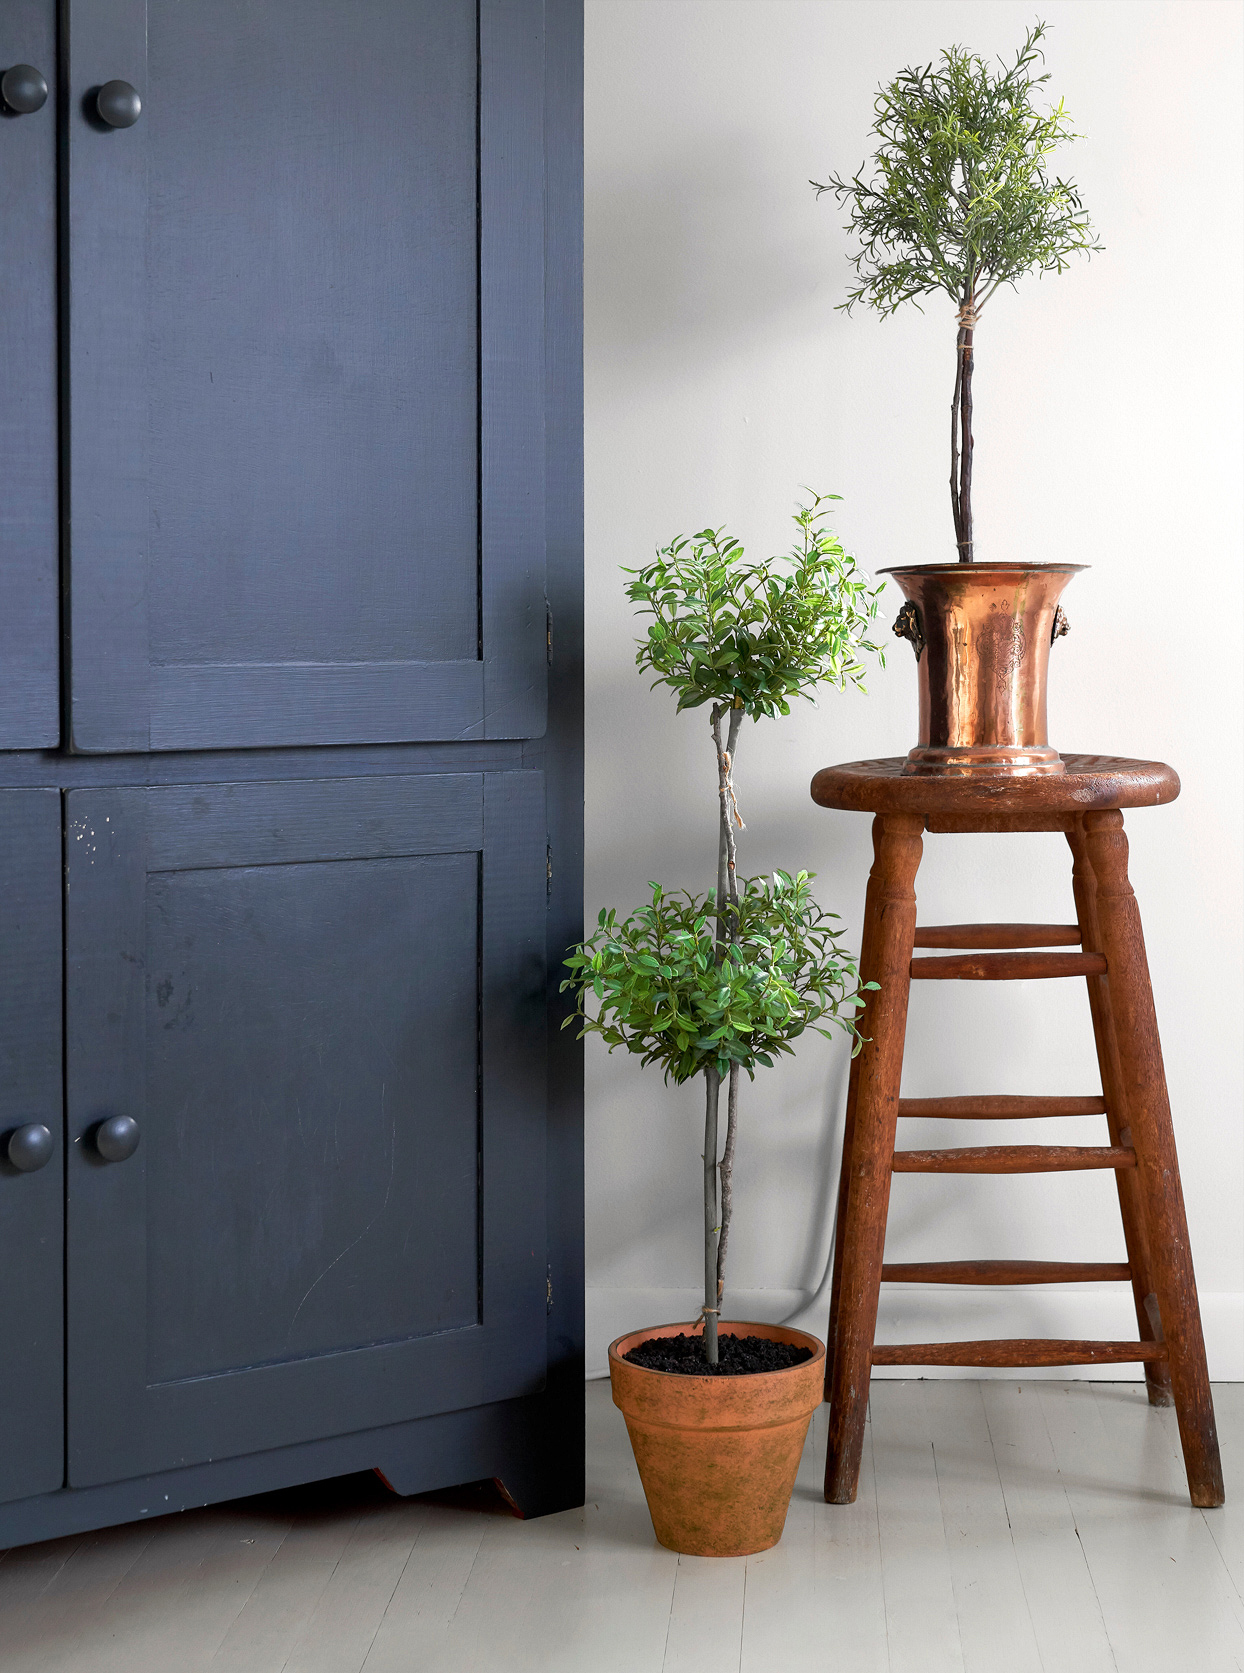 blue-black rustic tv cabinet stool potted plants